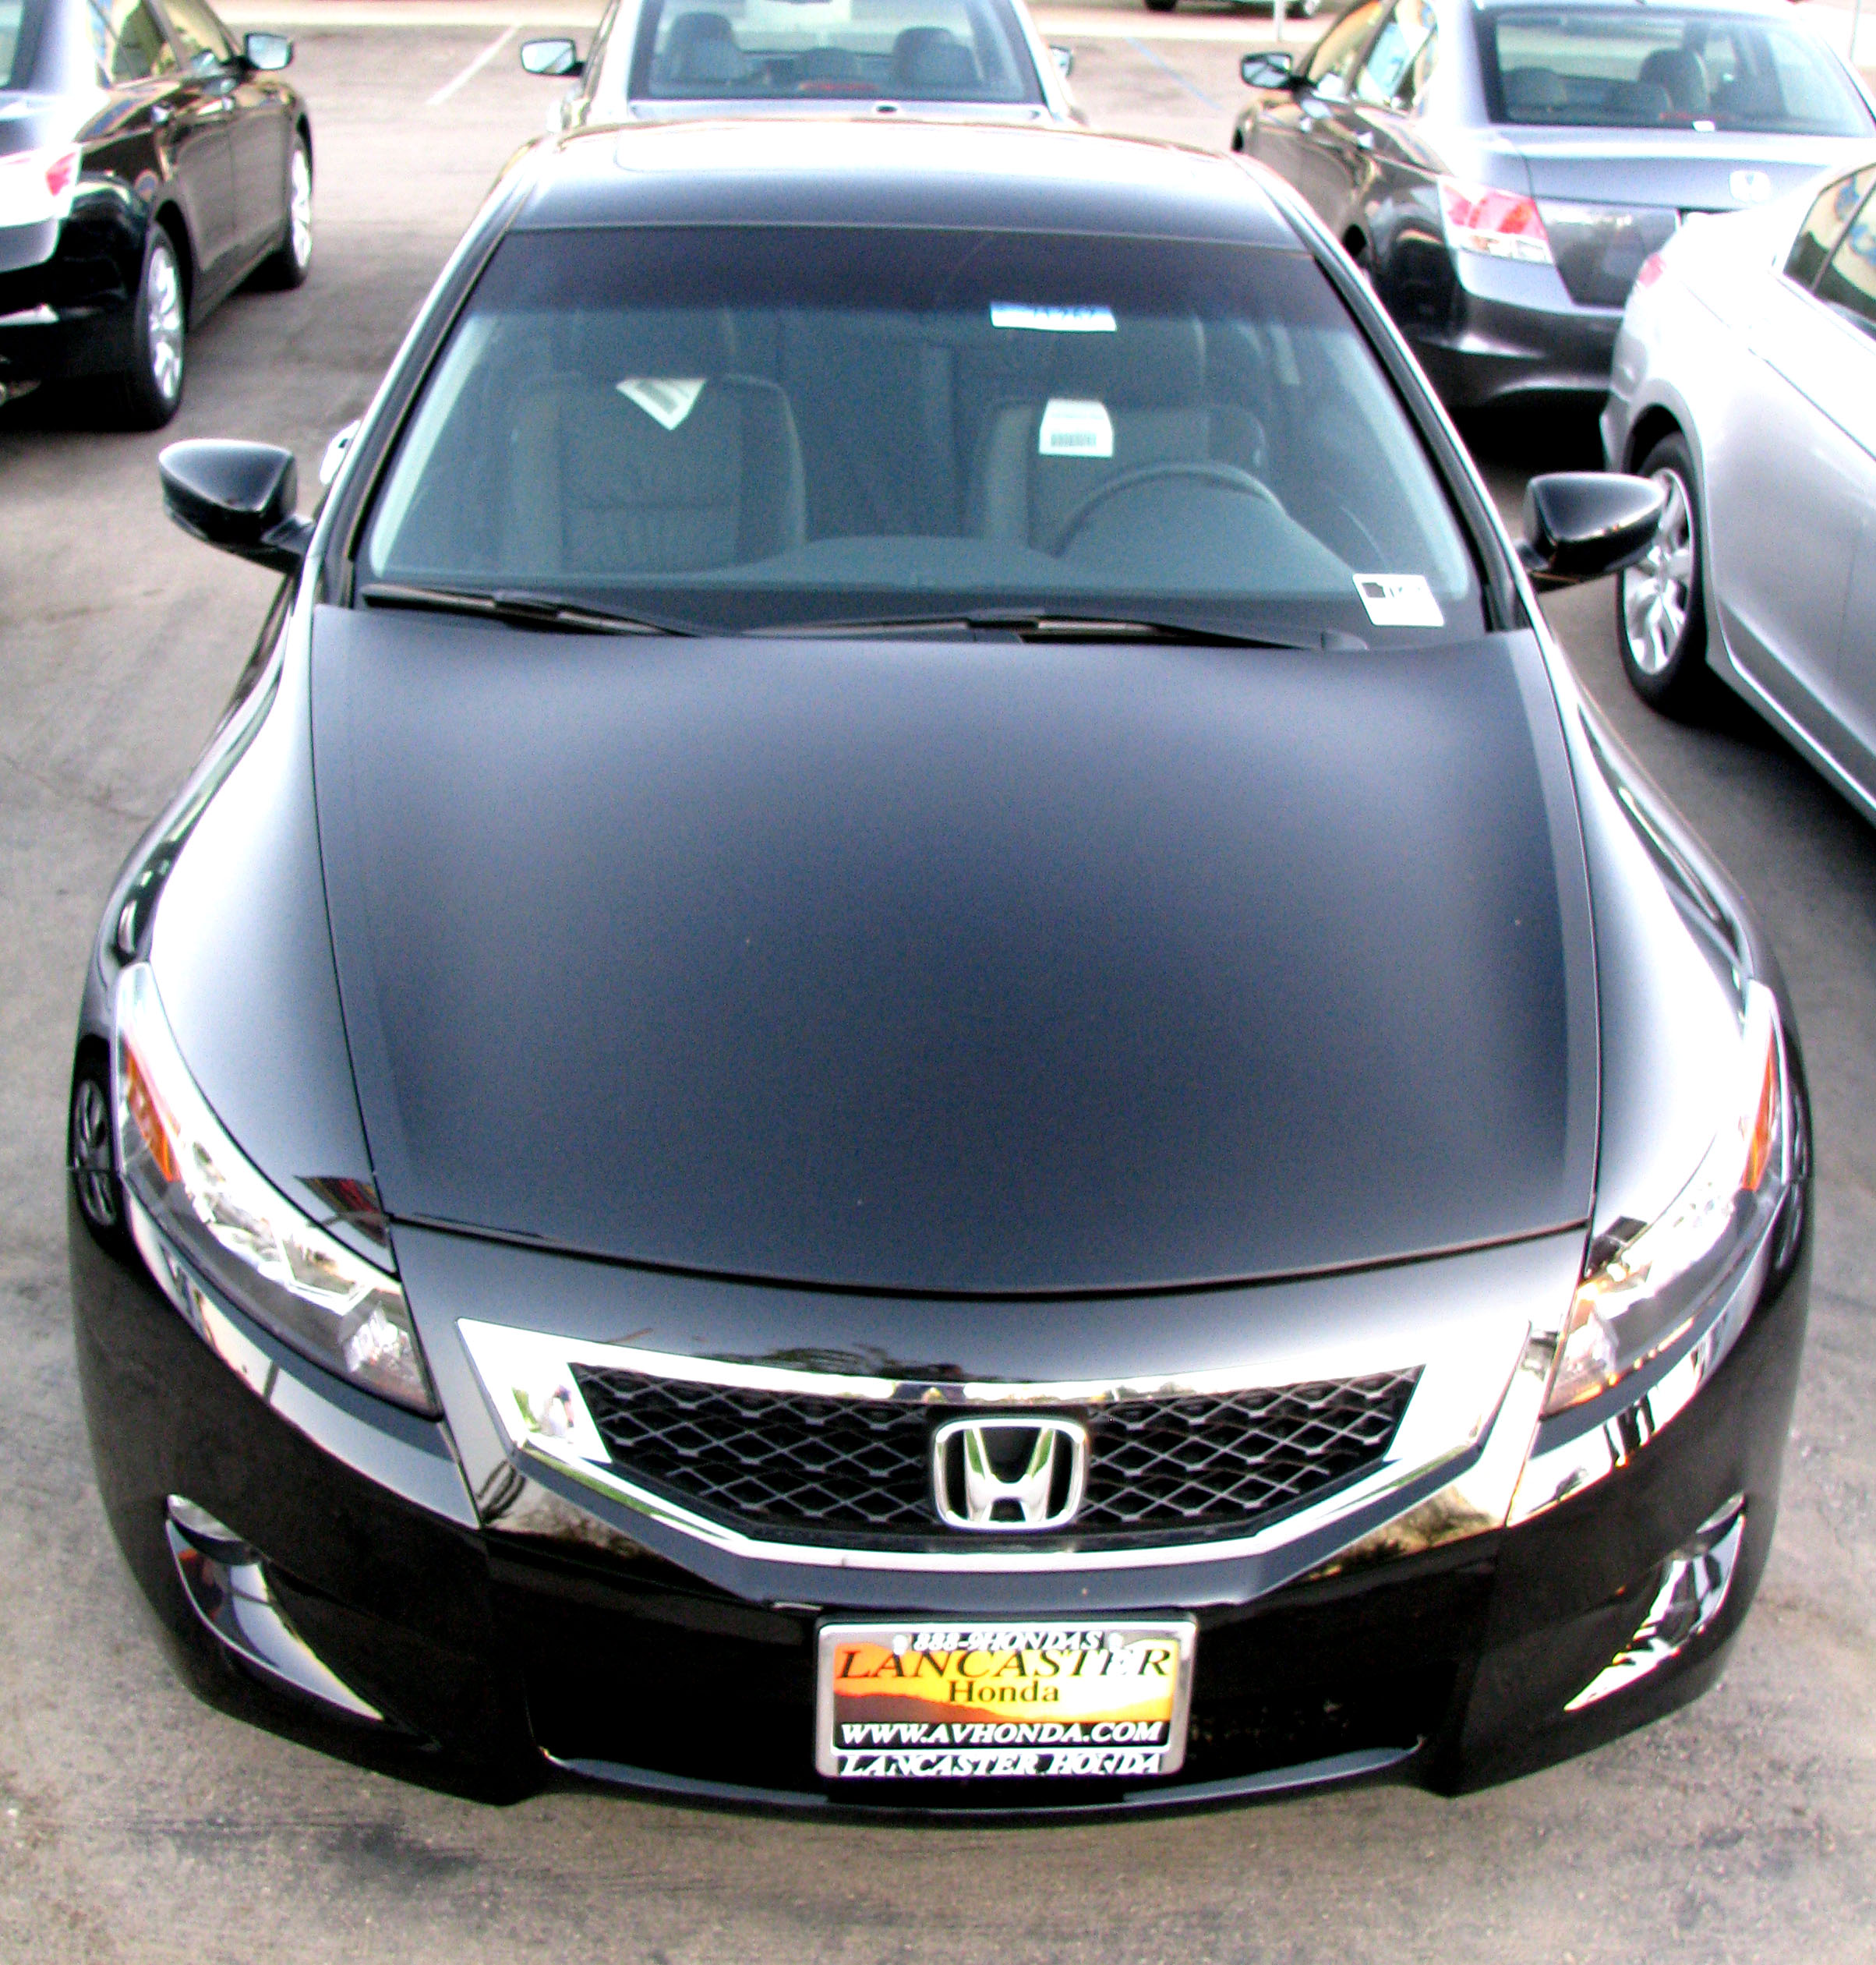 2009 Honda Accord #16